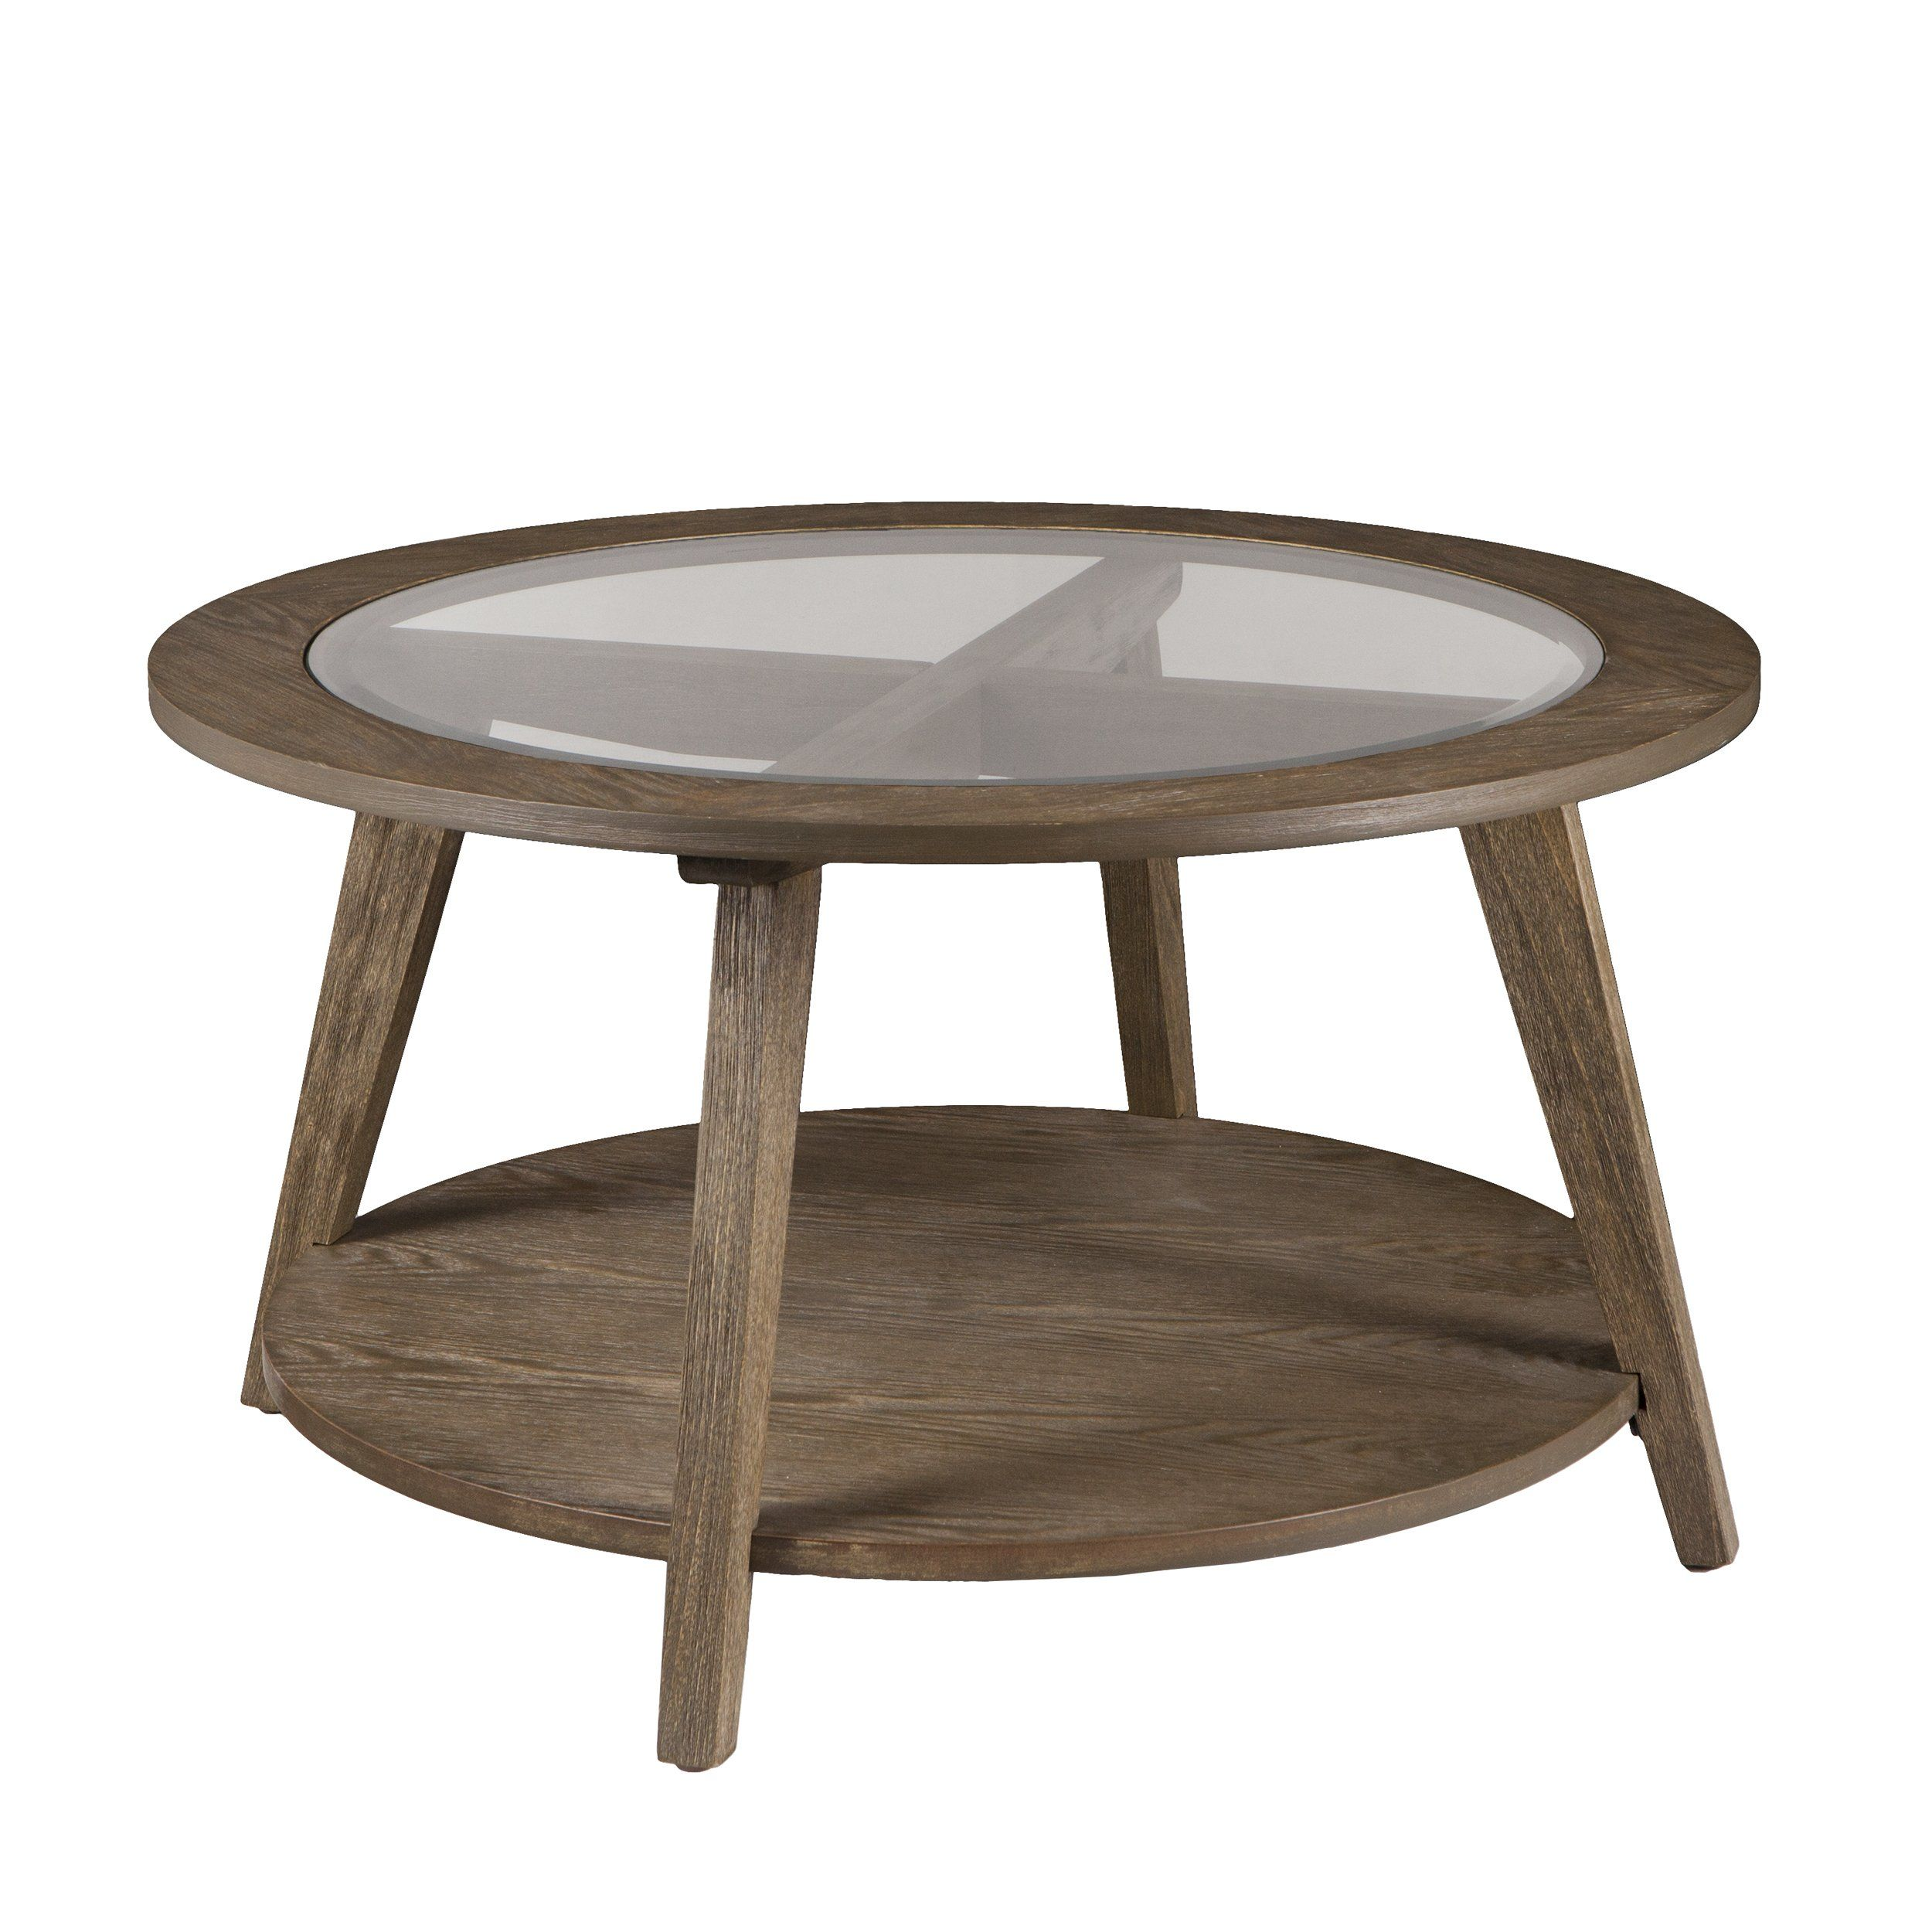 Furniture Hotspot A Round Wood W Glass Top Coffee Table A Burnt Oak W Gray Wash 32 W Round Cocktail Tables Round Wood Coffee Table Glass Top Coffee Table [ 2500 x 2500 Pixel ]